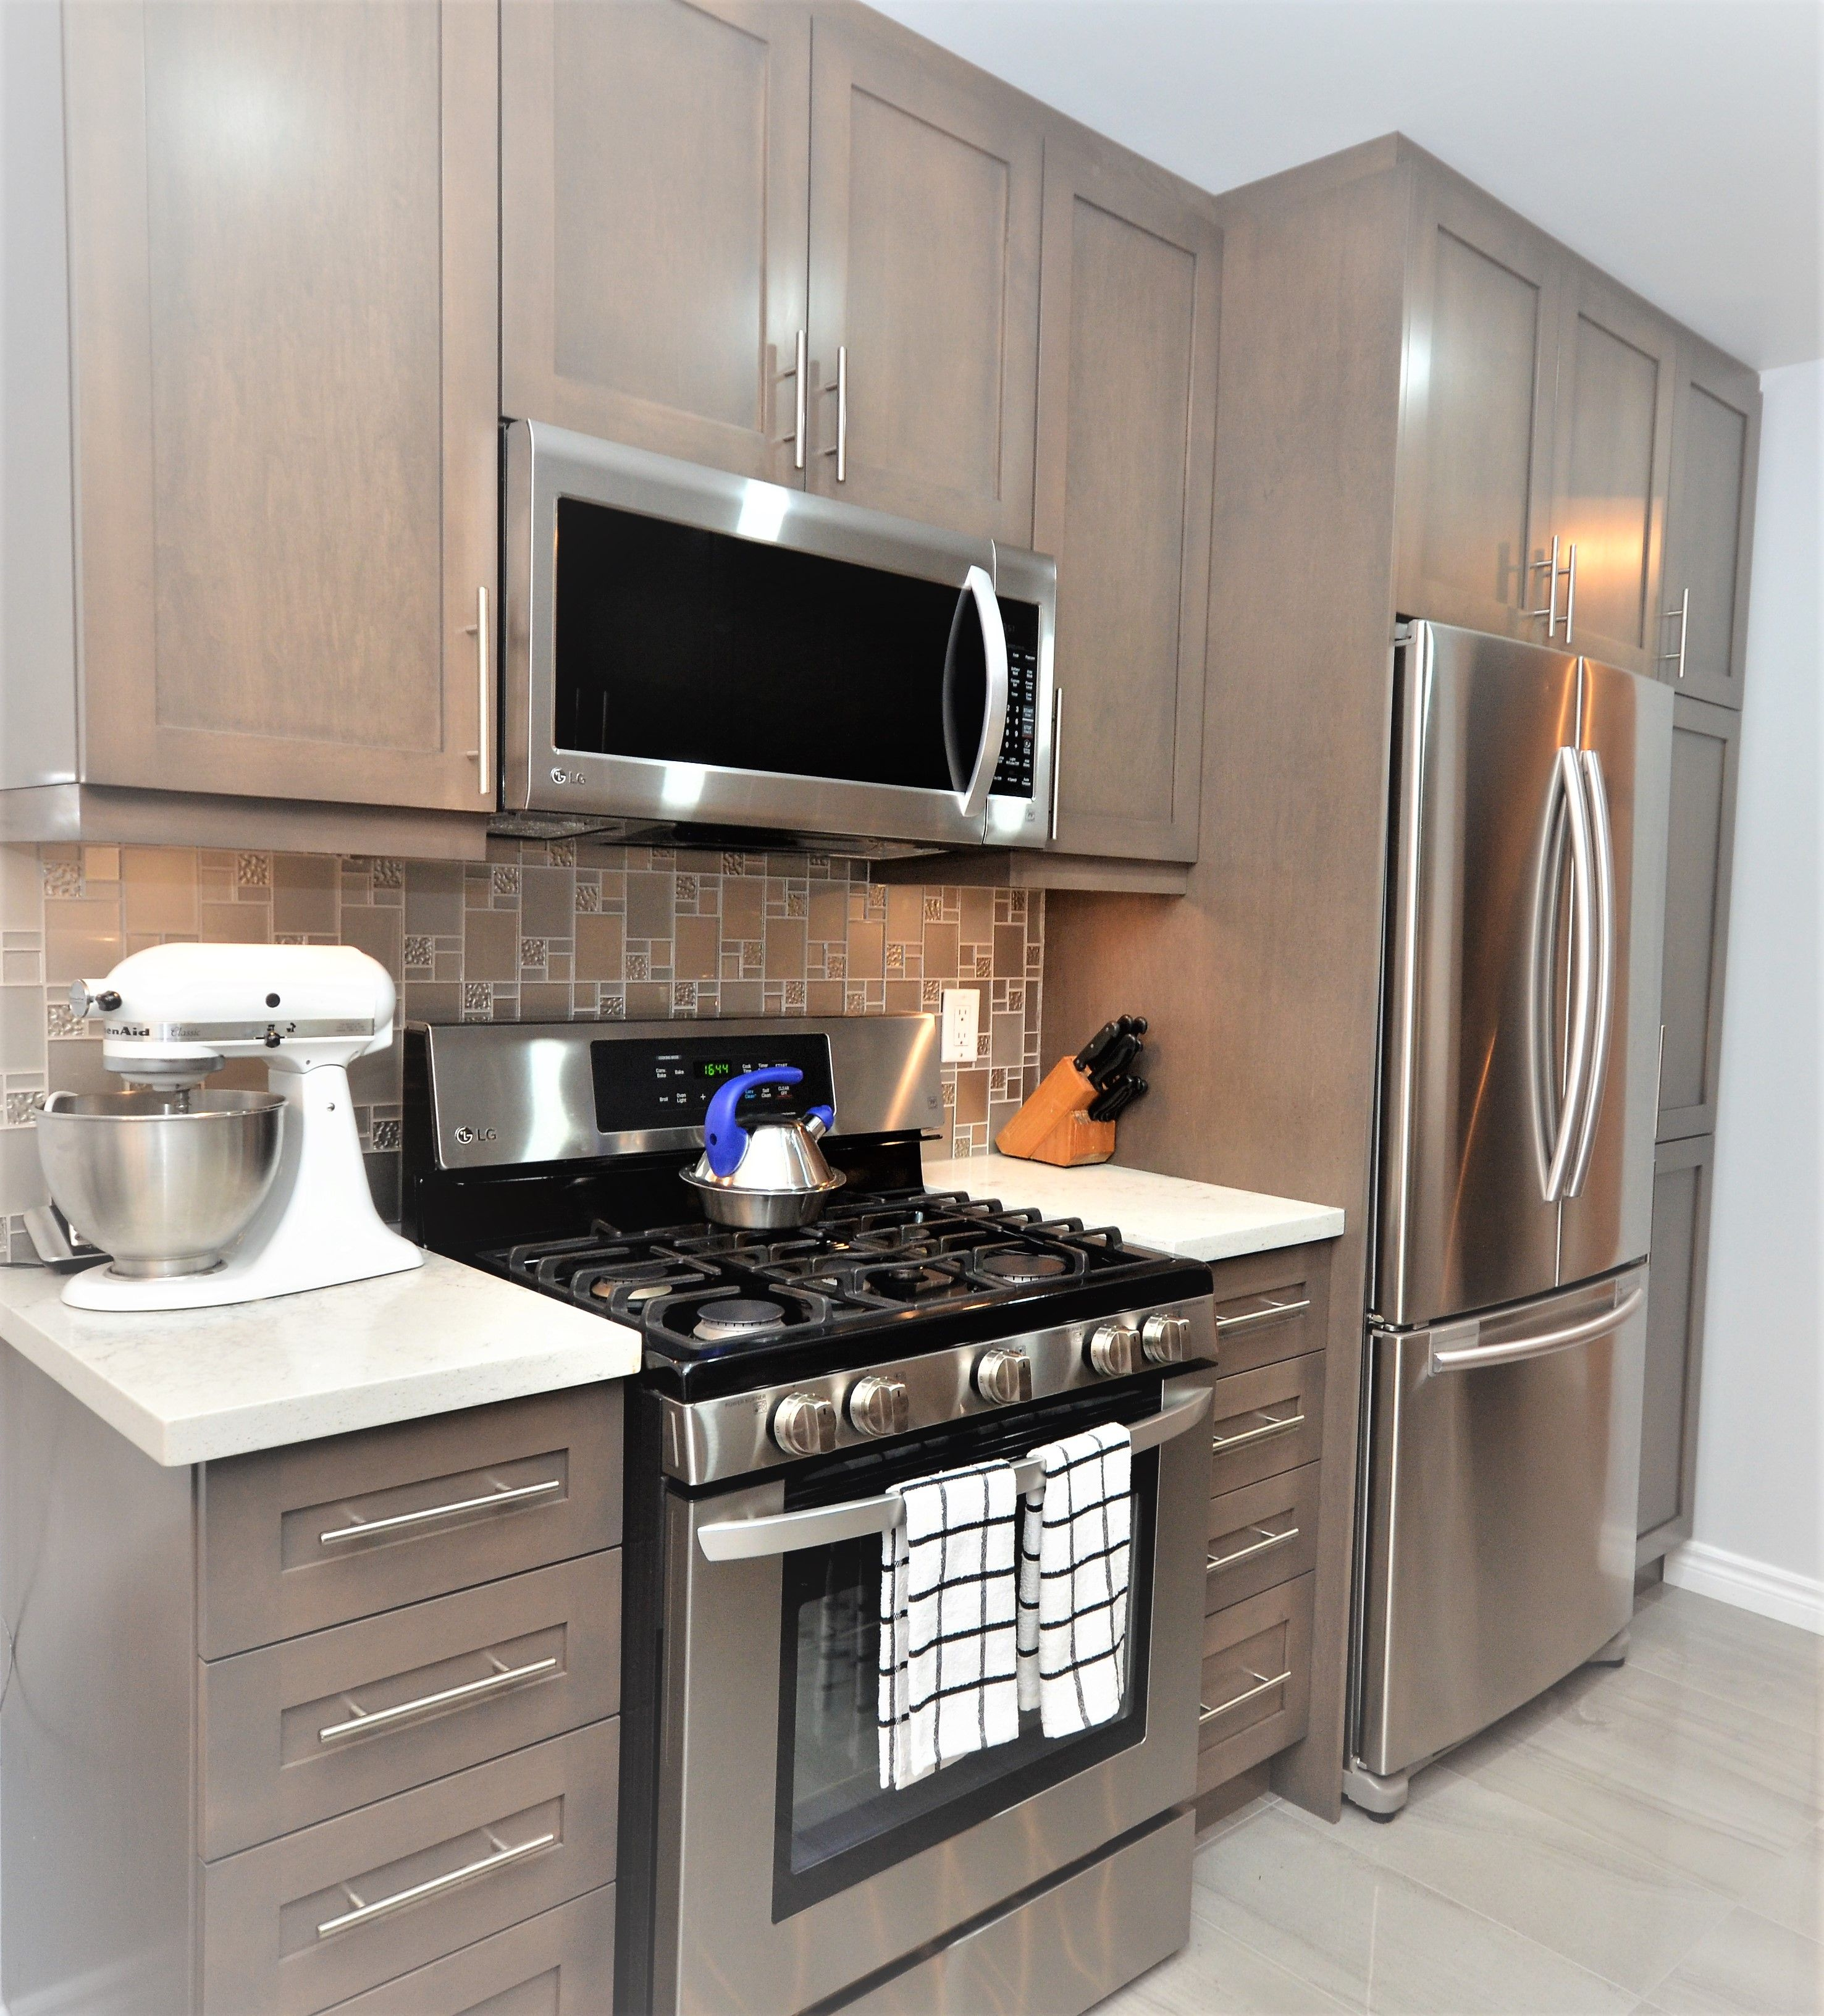 A Grand Design With Minimal Space Blocking Up A Window Or An Interior Pass Through Allows You To Add Upper Cabinets Add In 2020 Cheap Flooring Upper Cabinets Kitchen